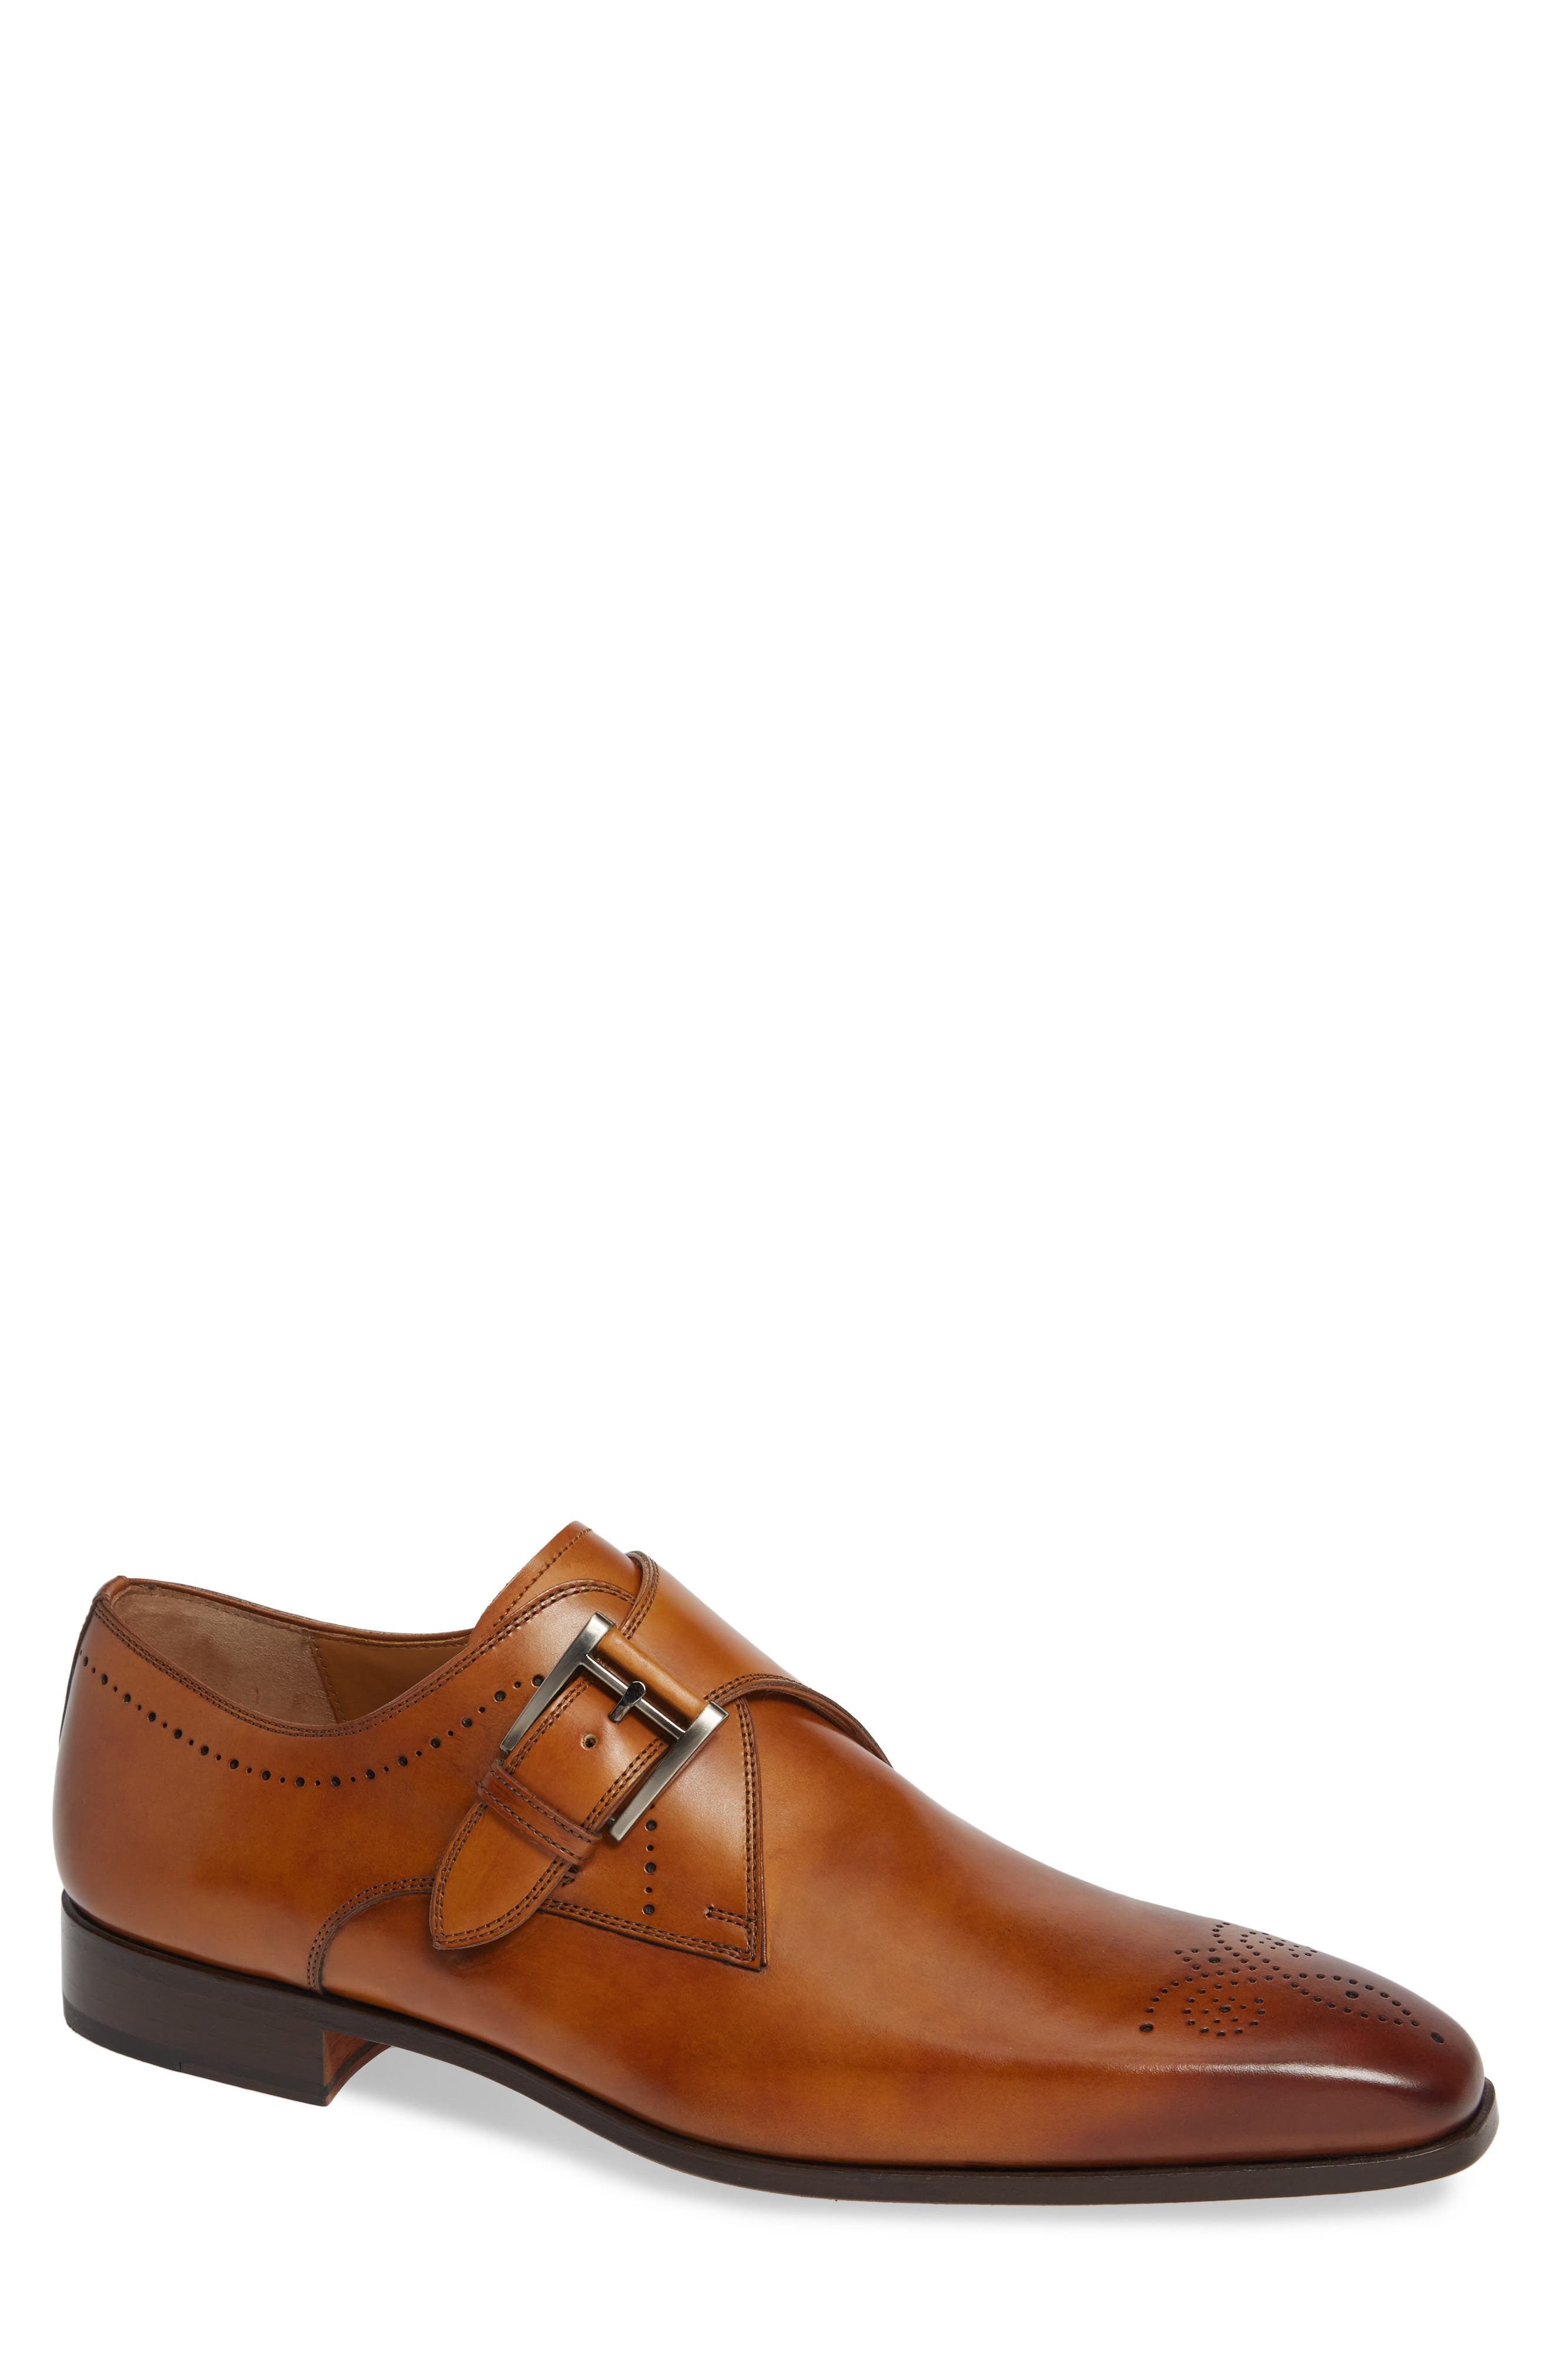 Geruasi Monk Strap Shoe,                         Main,                         color, 230